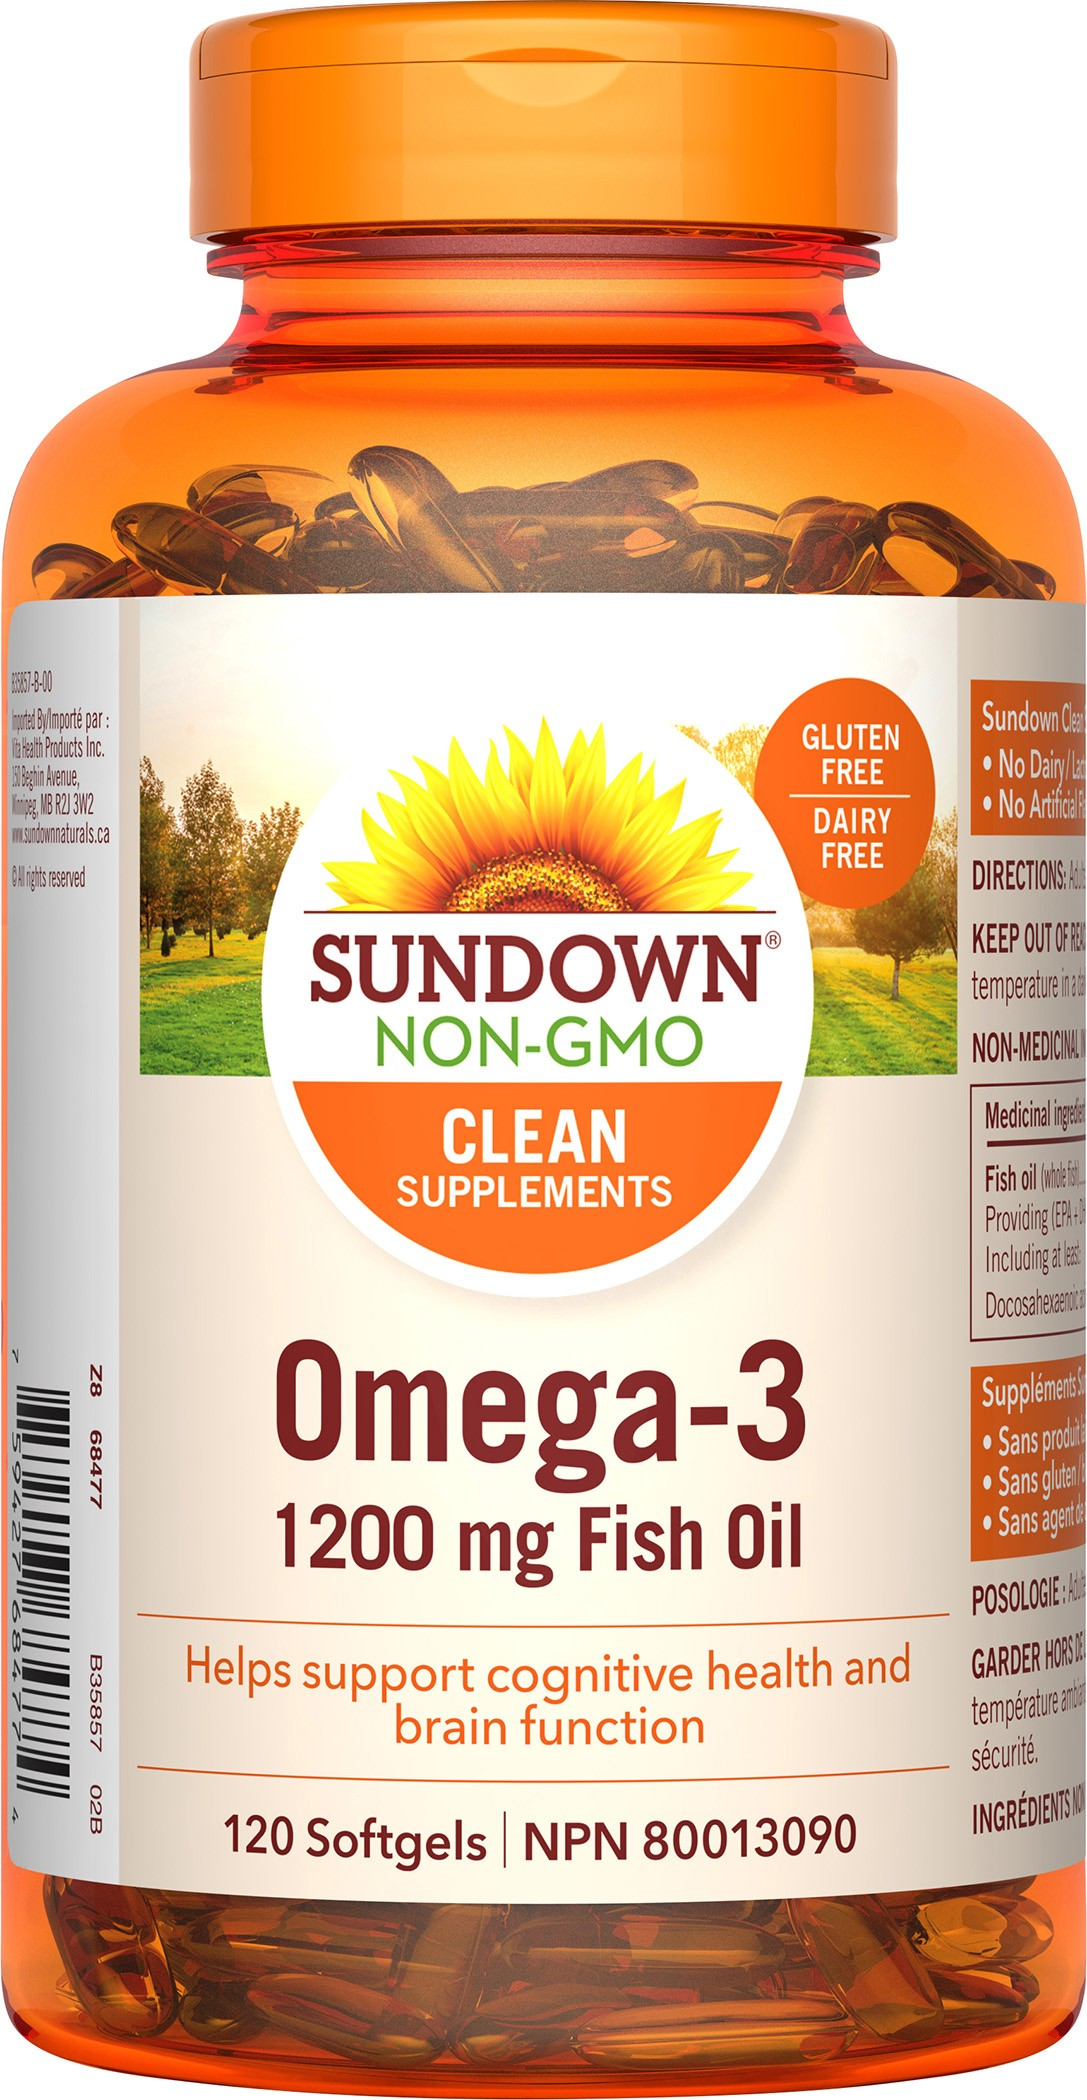 Sundown naturals canada fish oil wild alaskan salmon for Salmon fish oil